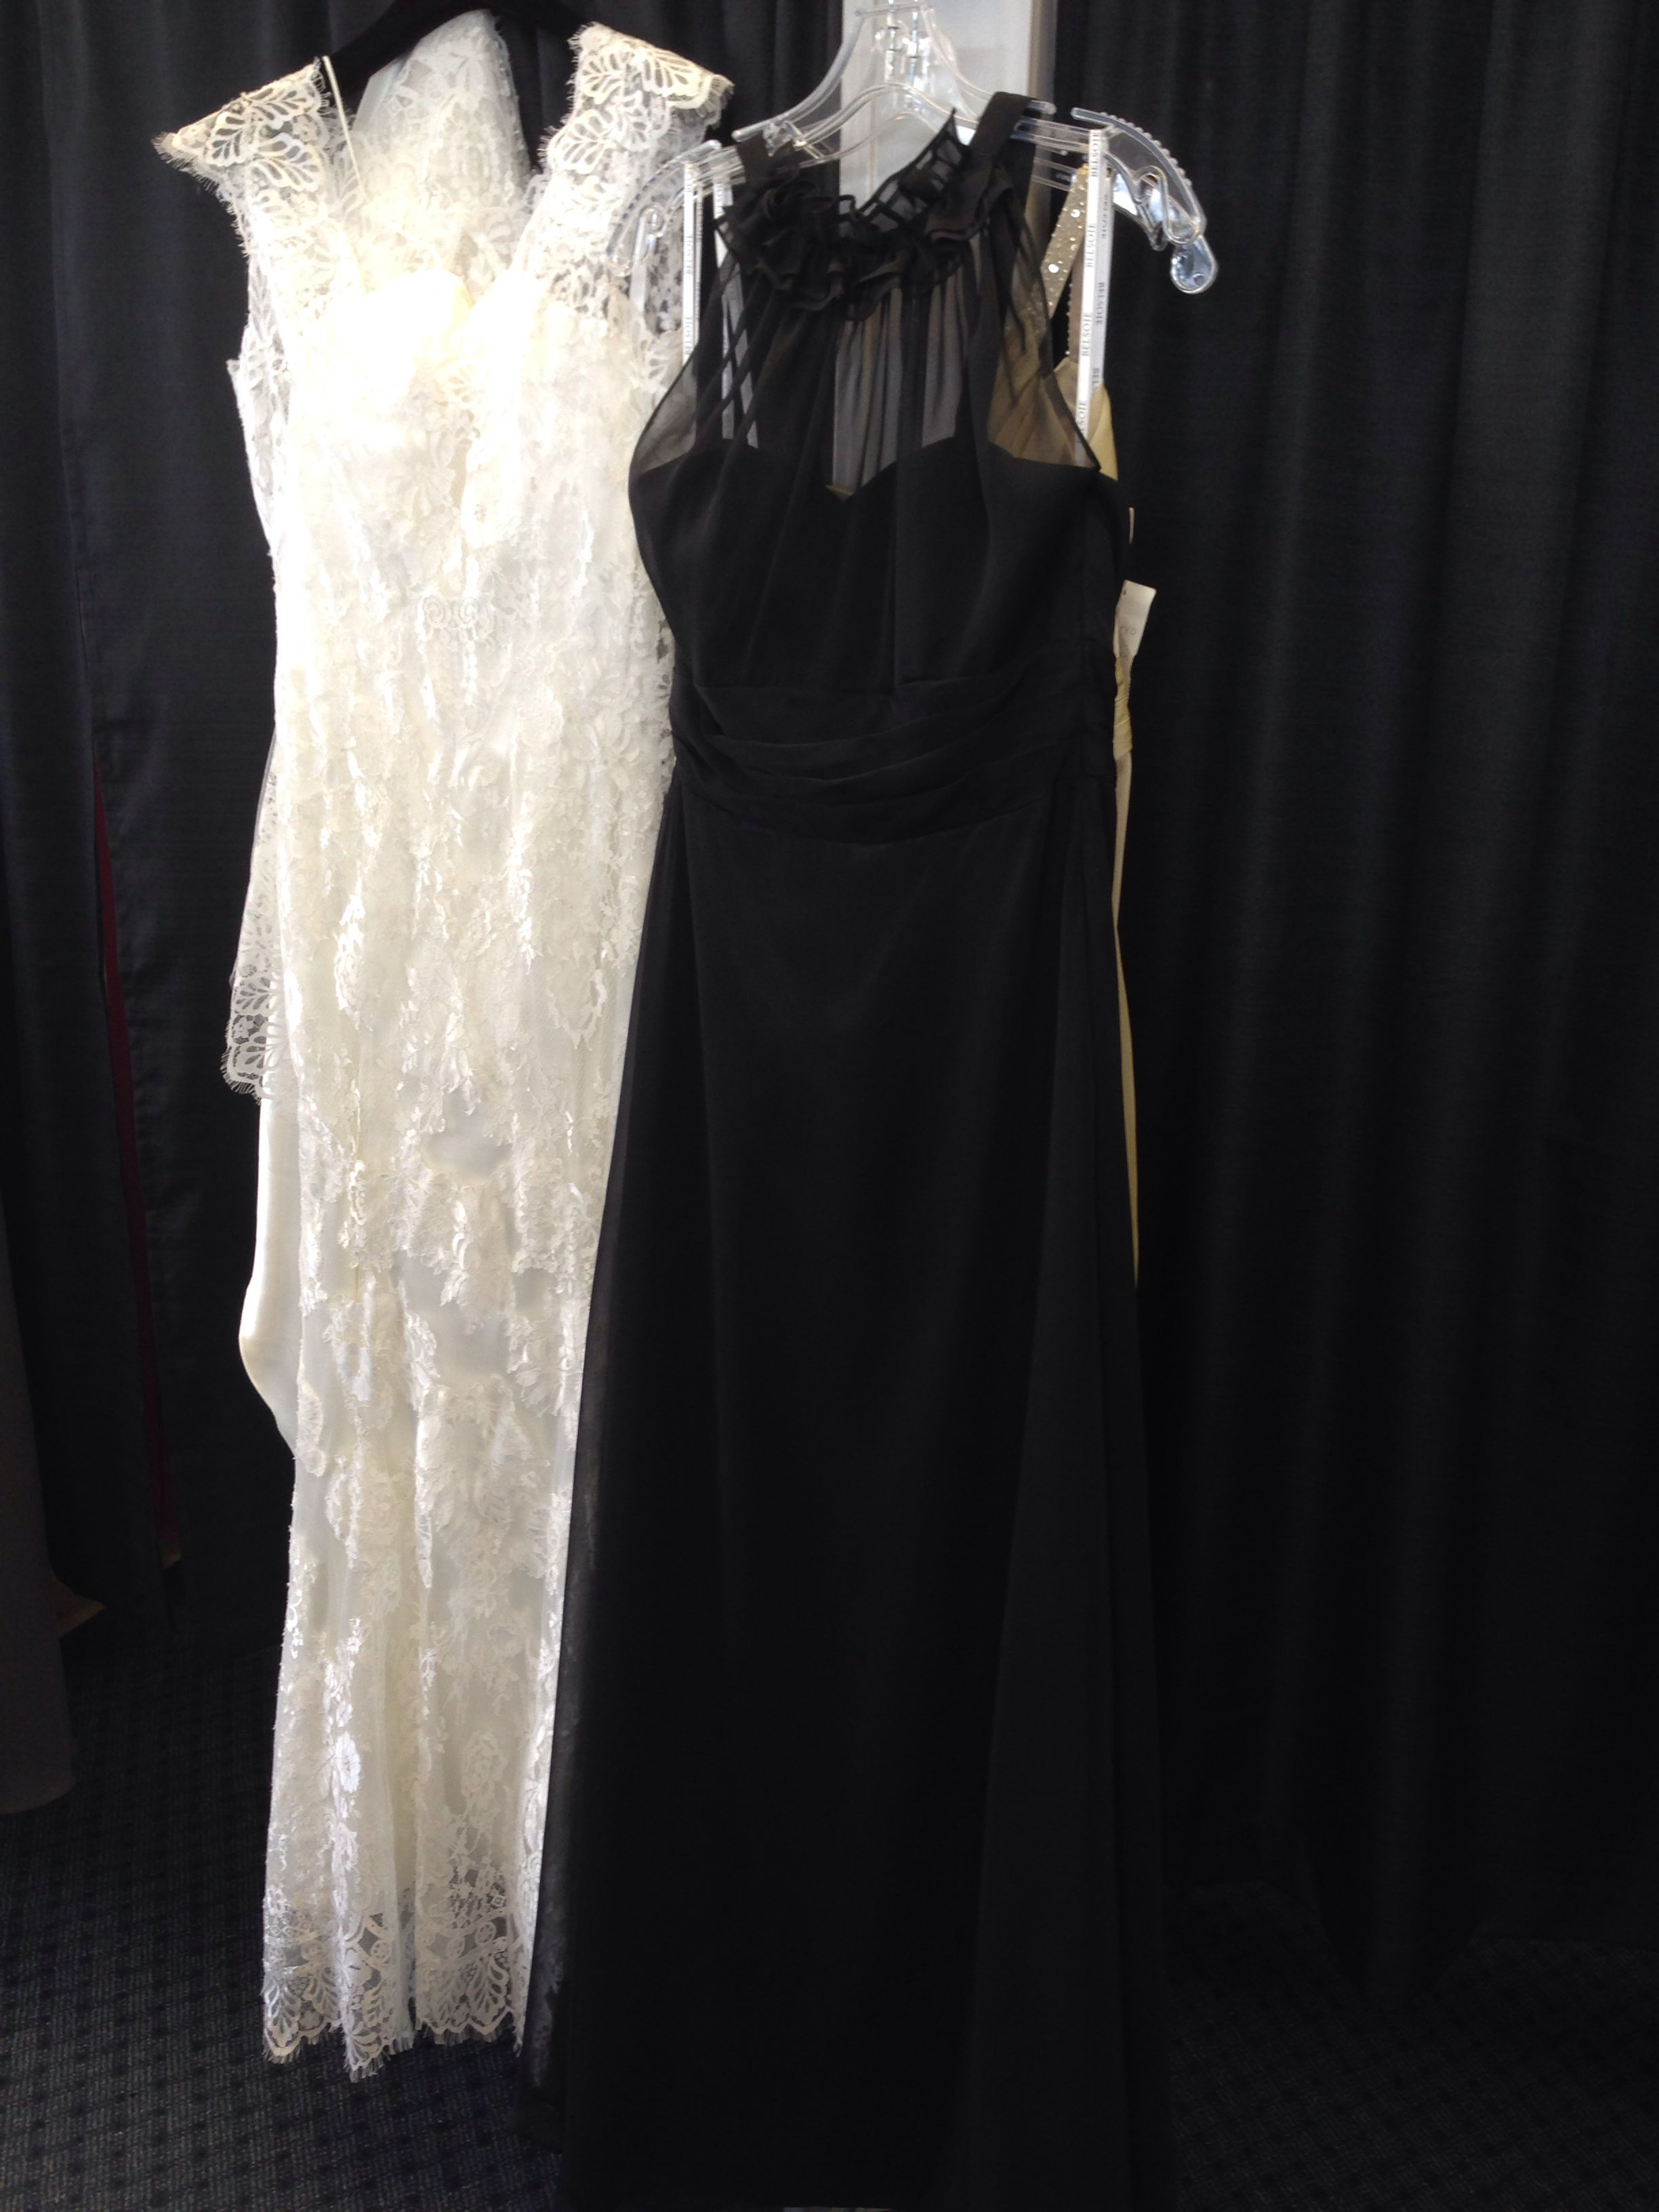 The bridesmaid dress in black next to the color and similar feel of my dress, seen elsewhere on this board.